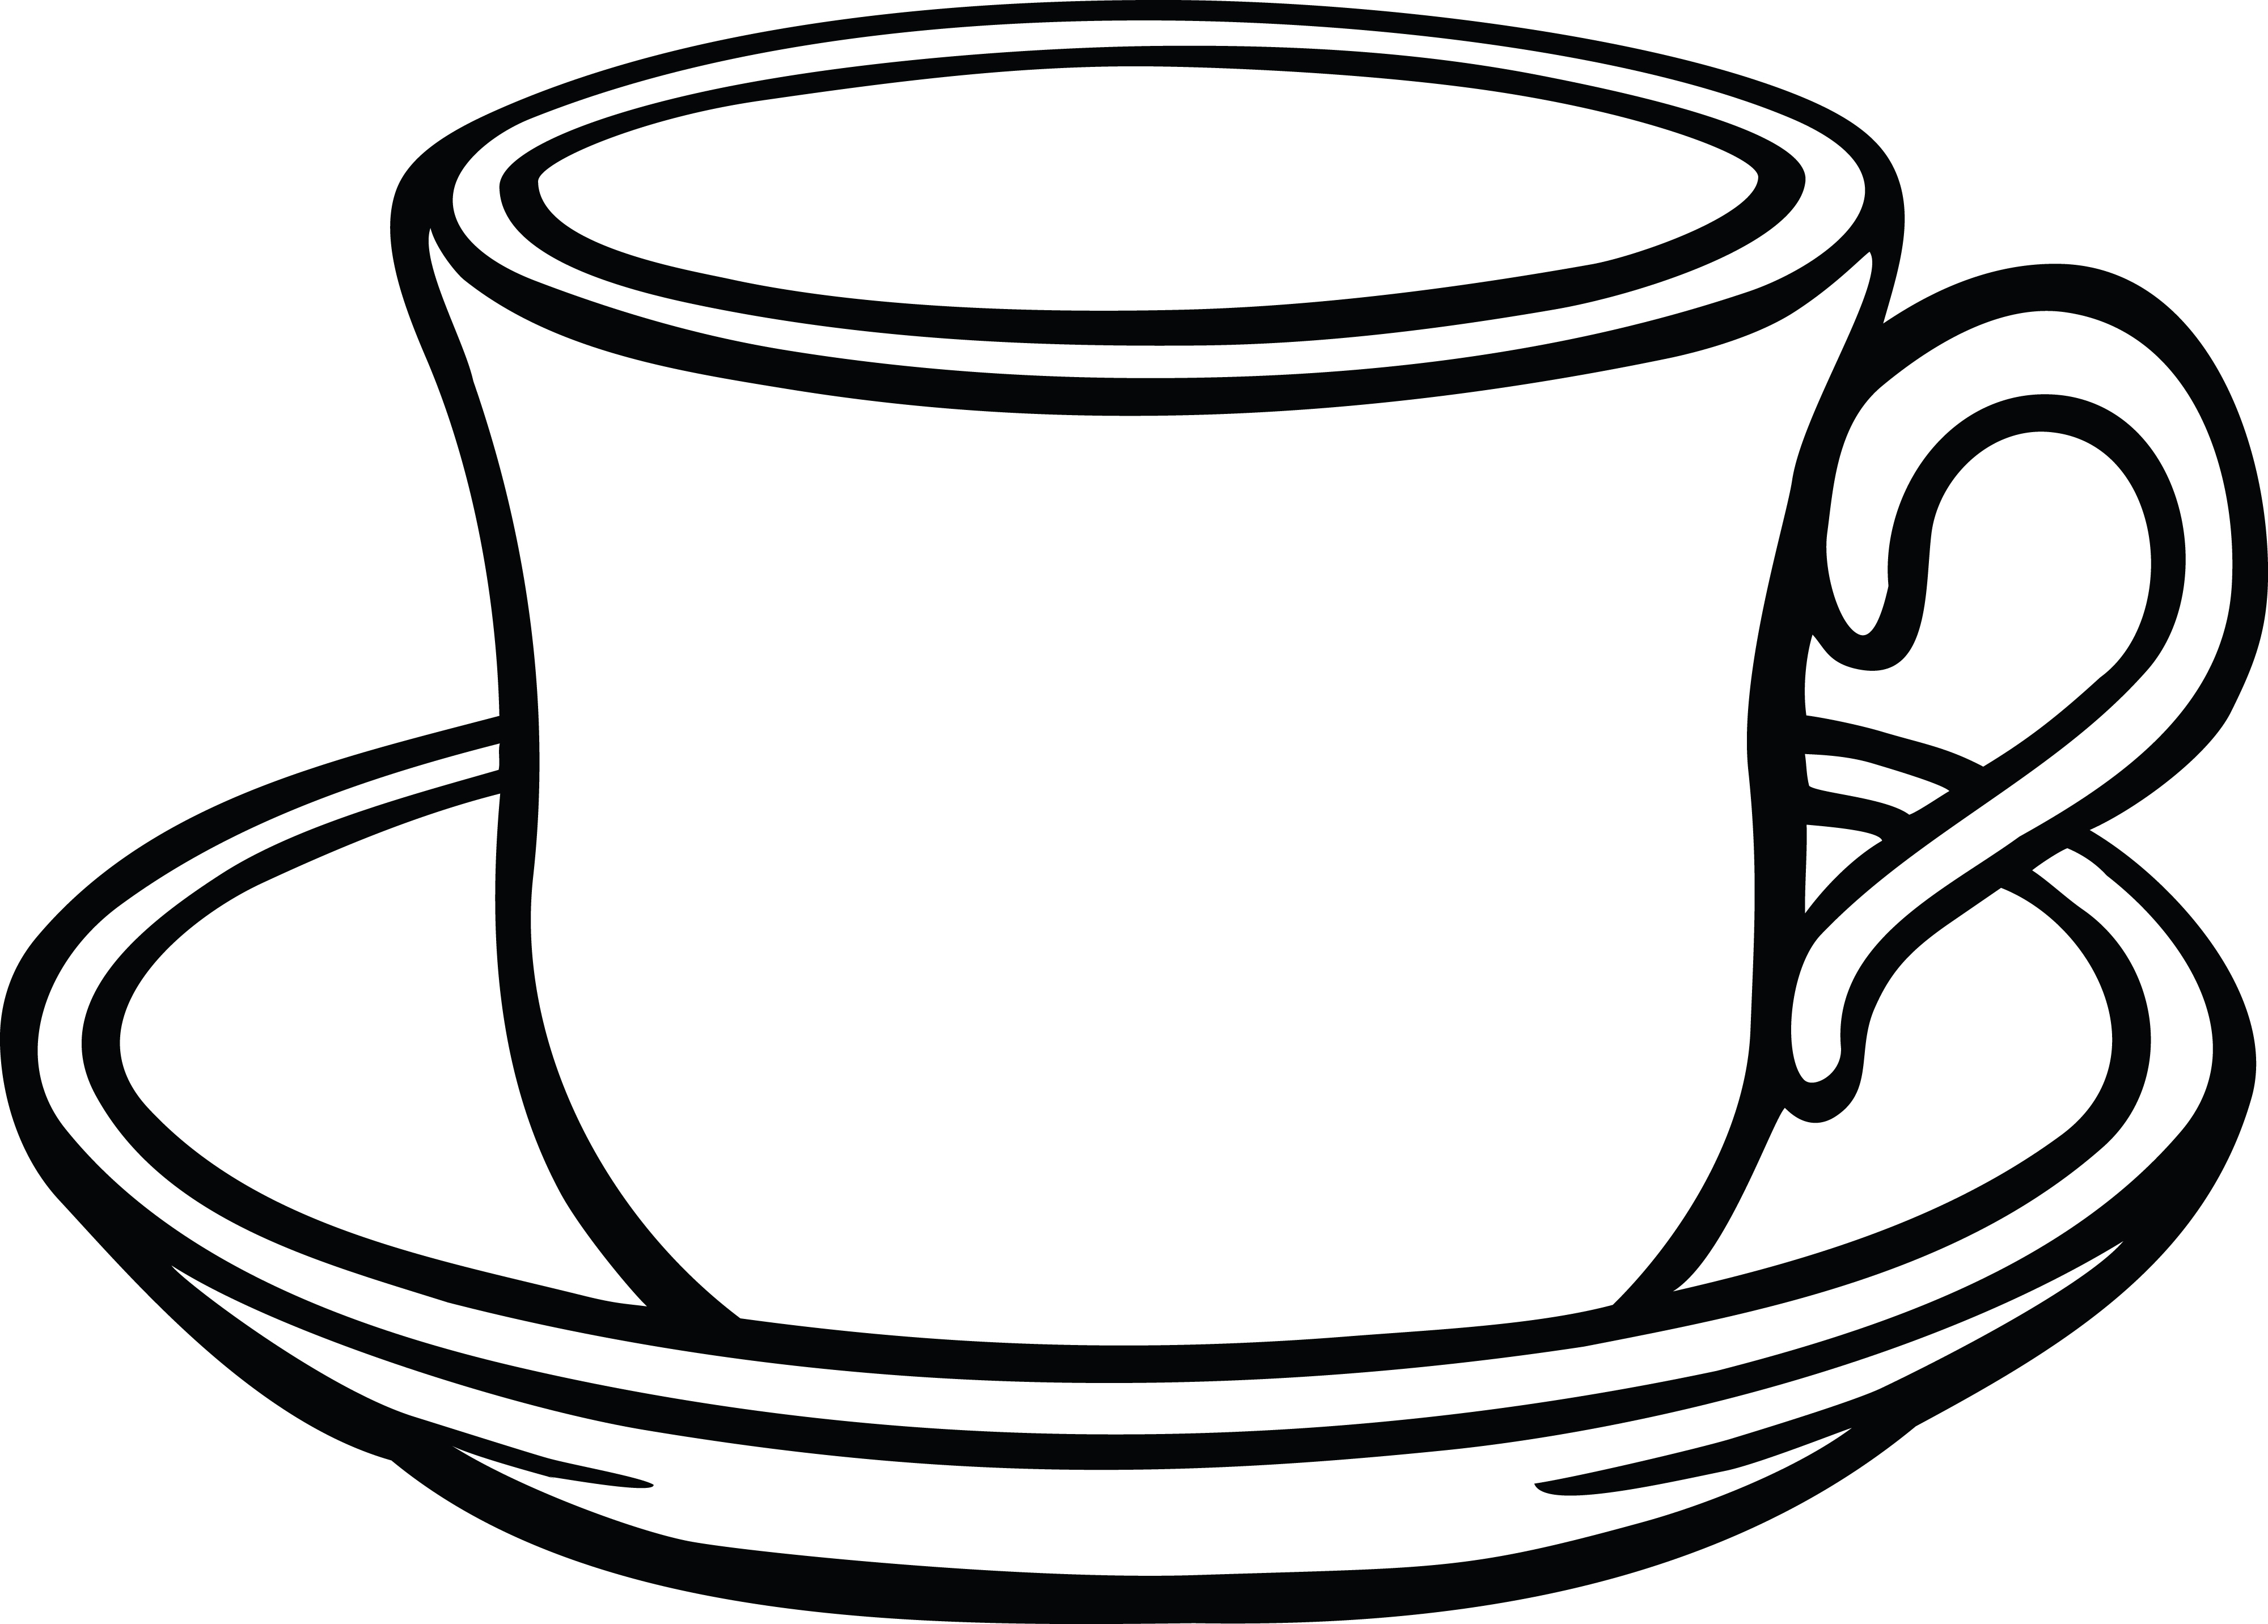 cup clipartlook. Cups clipart cheap